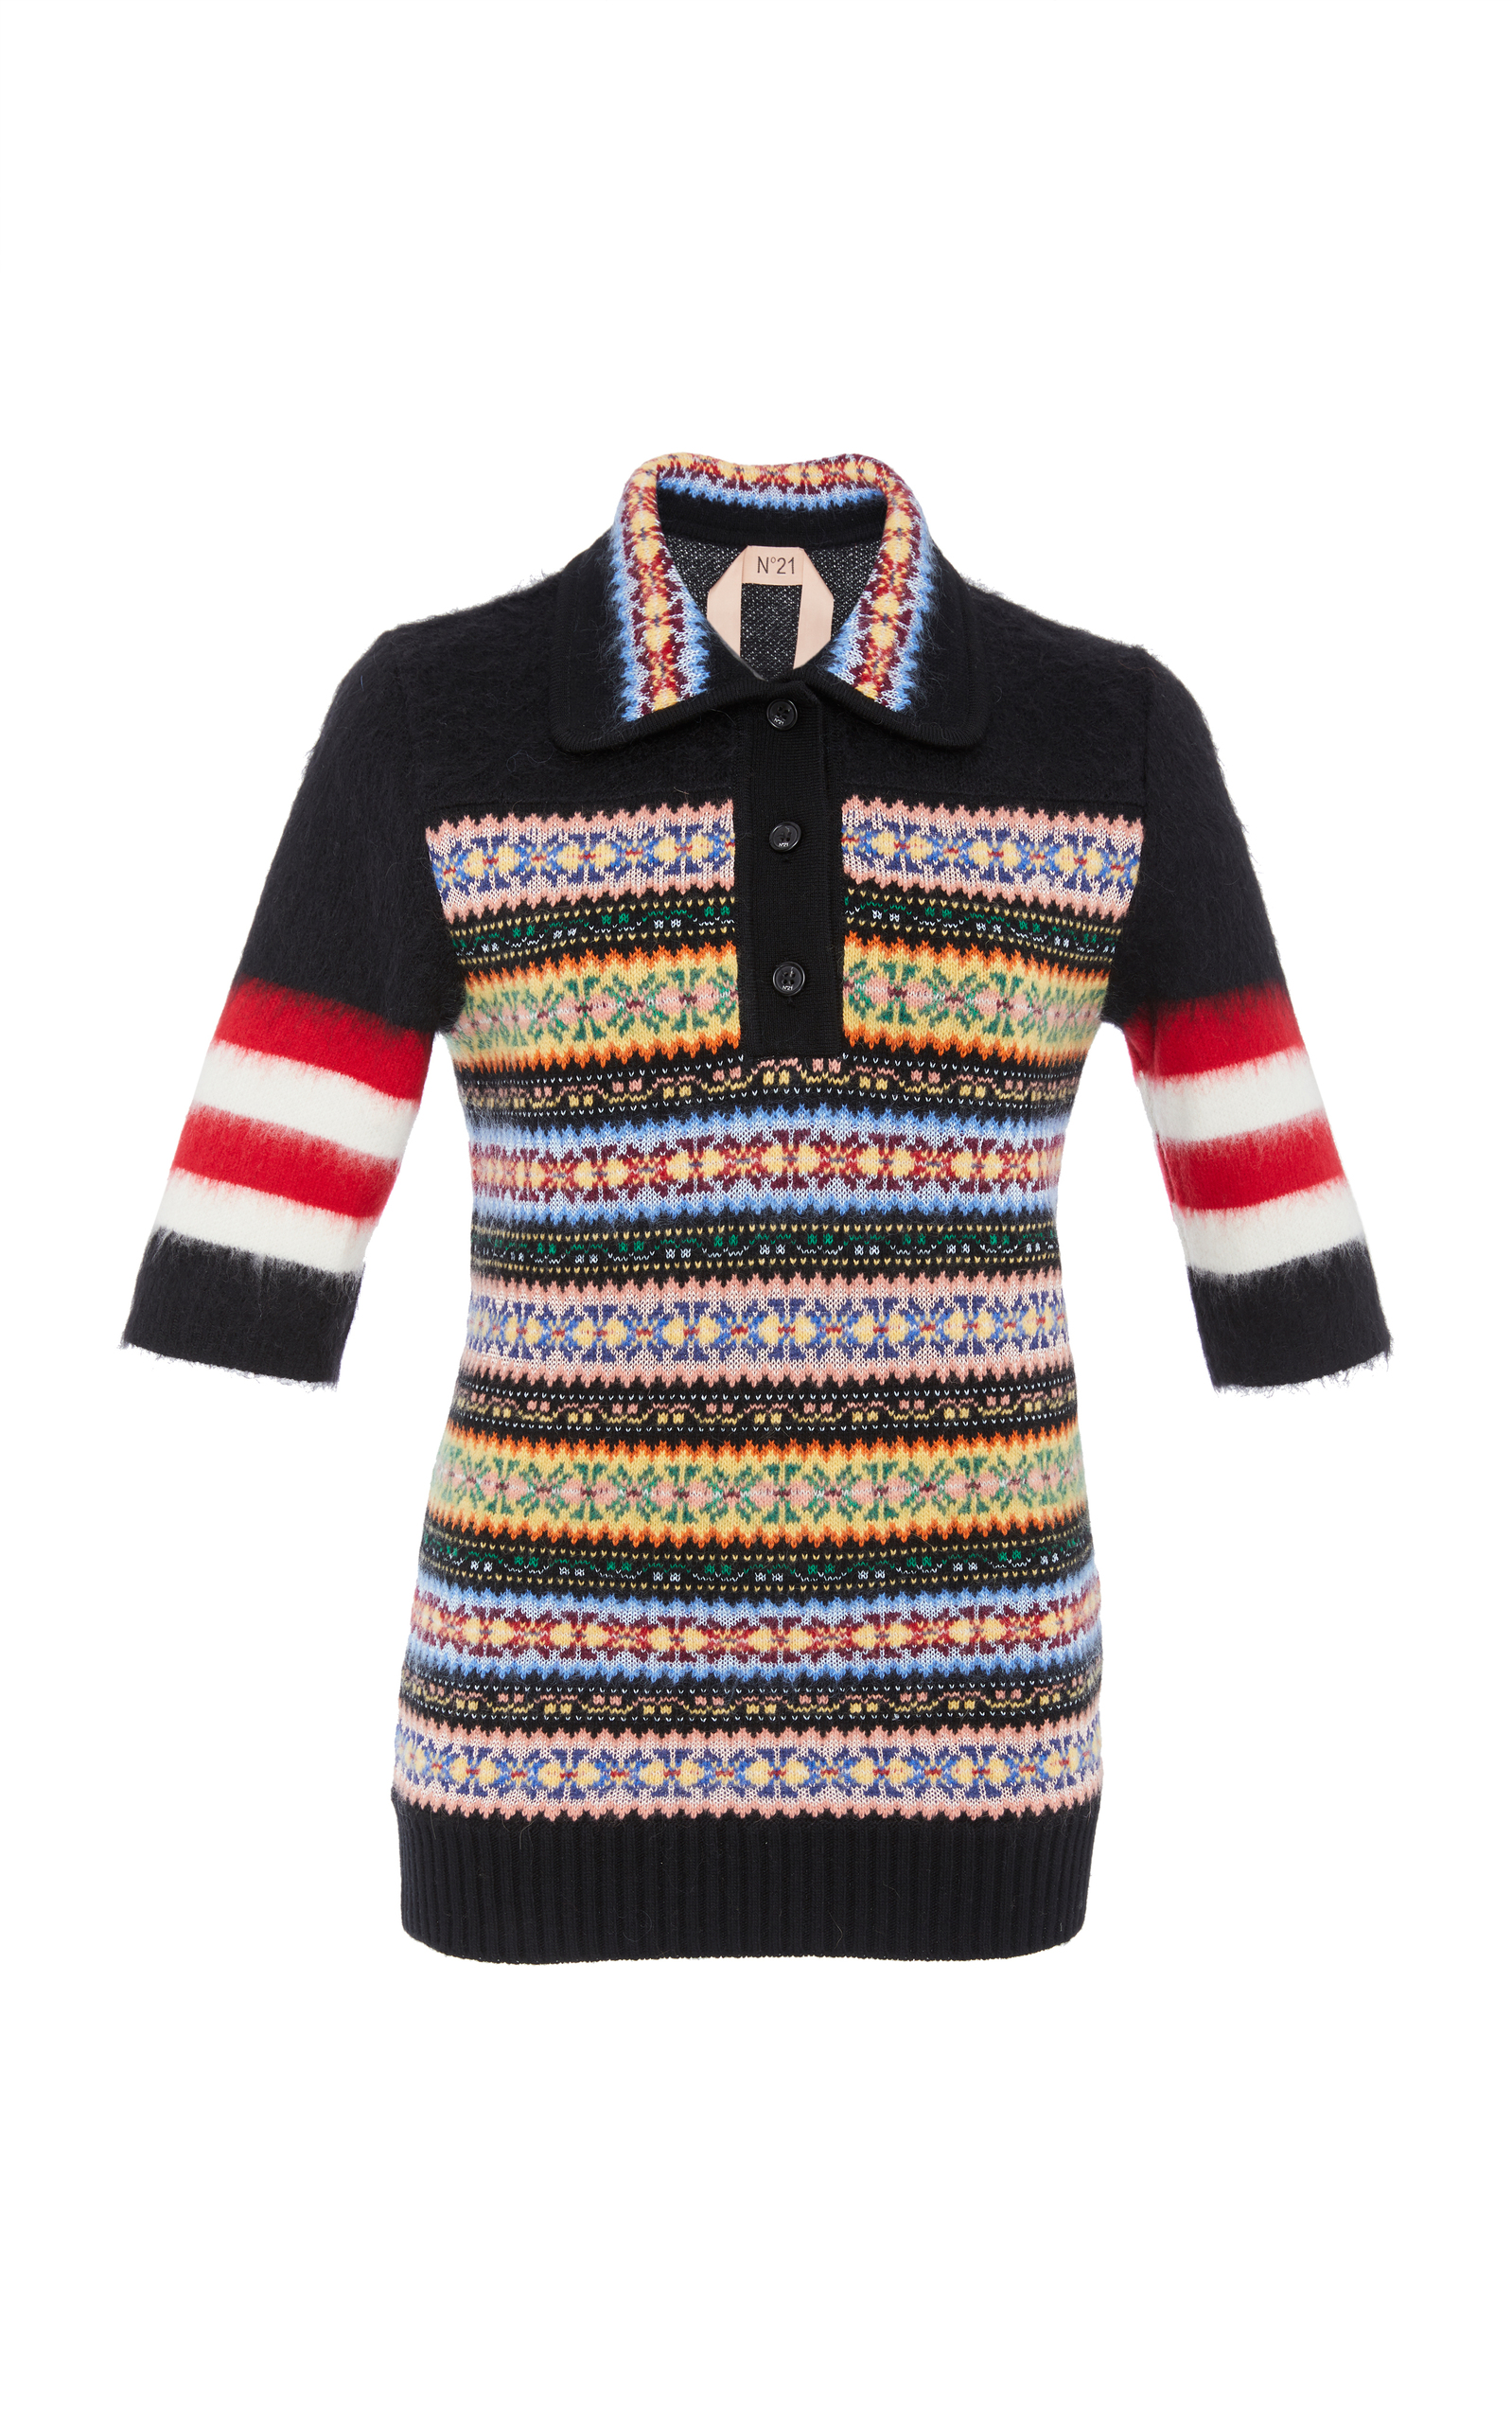 No. 21 - Patterned Wool Blend Polo Shirt - Womens - Multi